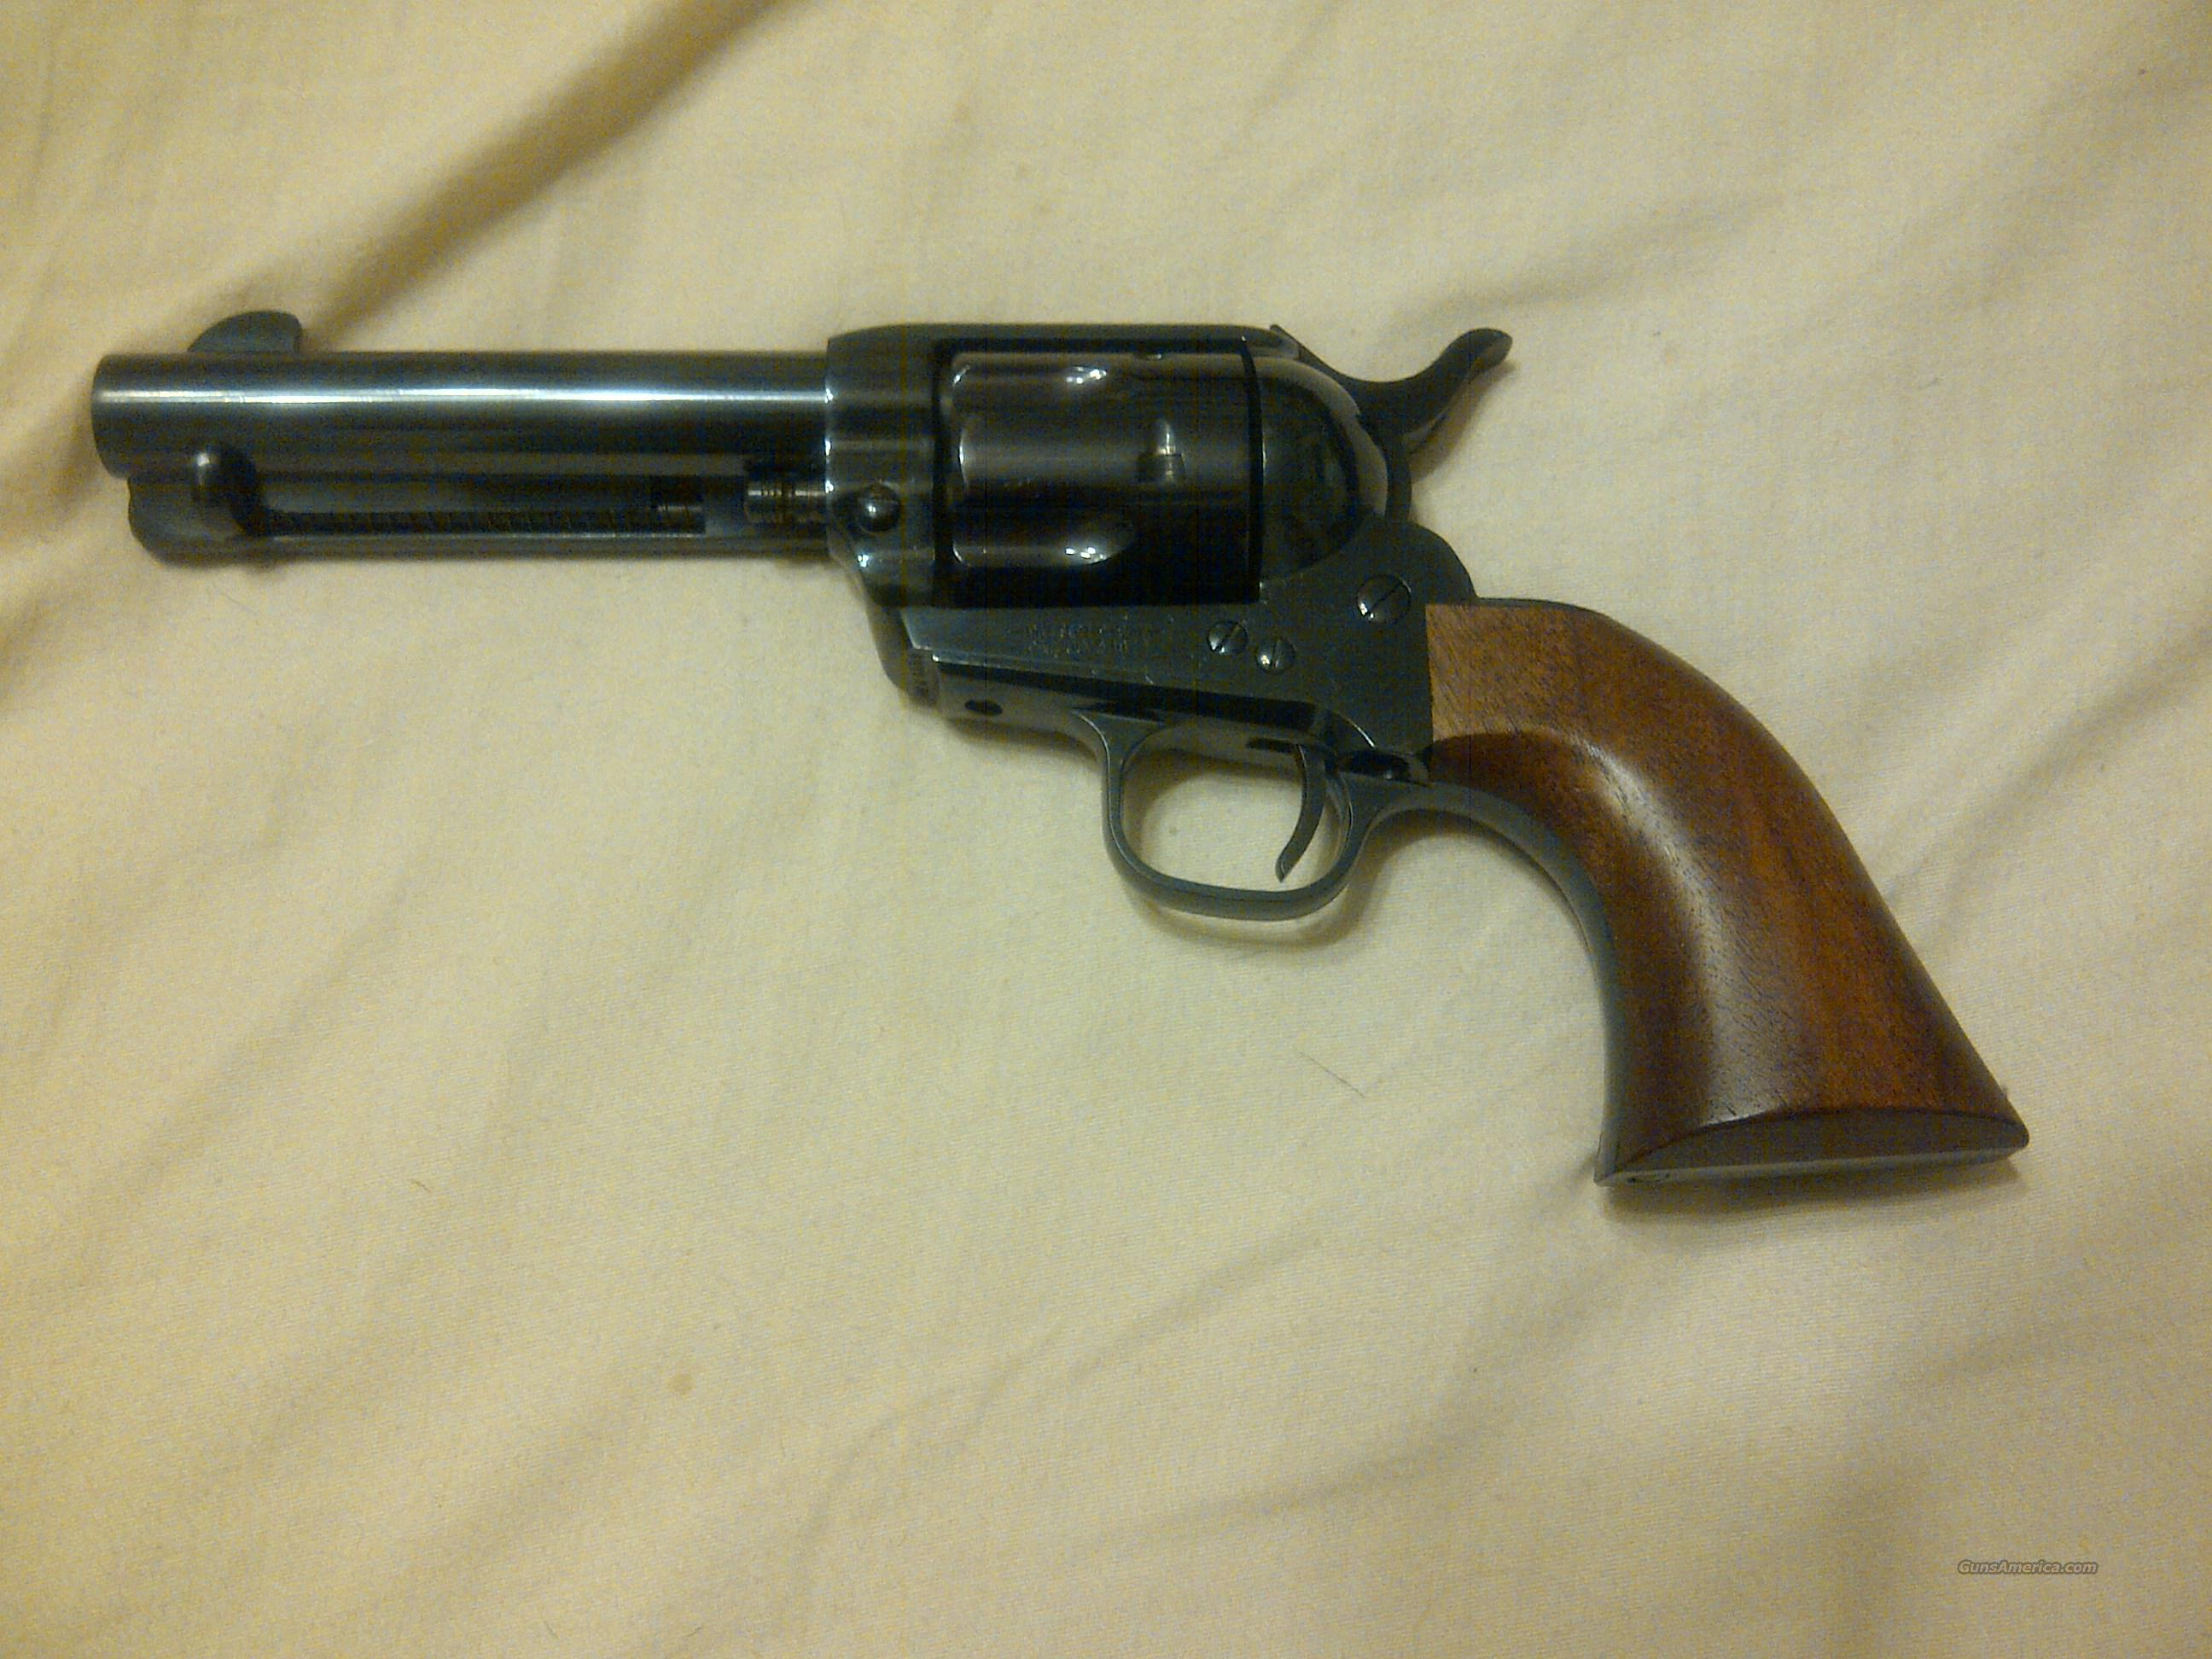 AMERICAN WESTERN ARMS 1873 COLT .45  Guns > Pistols > American Western Arms (AWA) Pistols